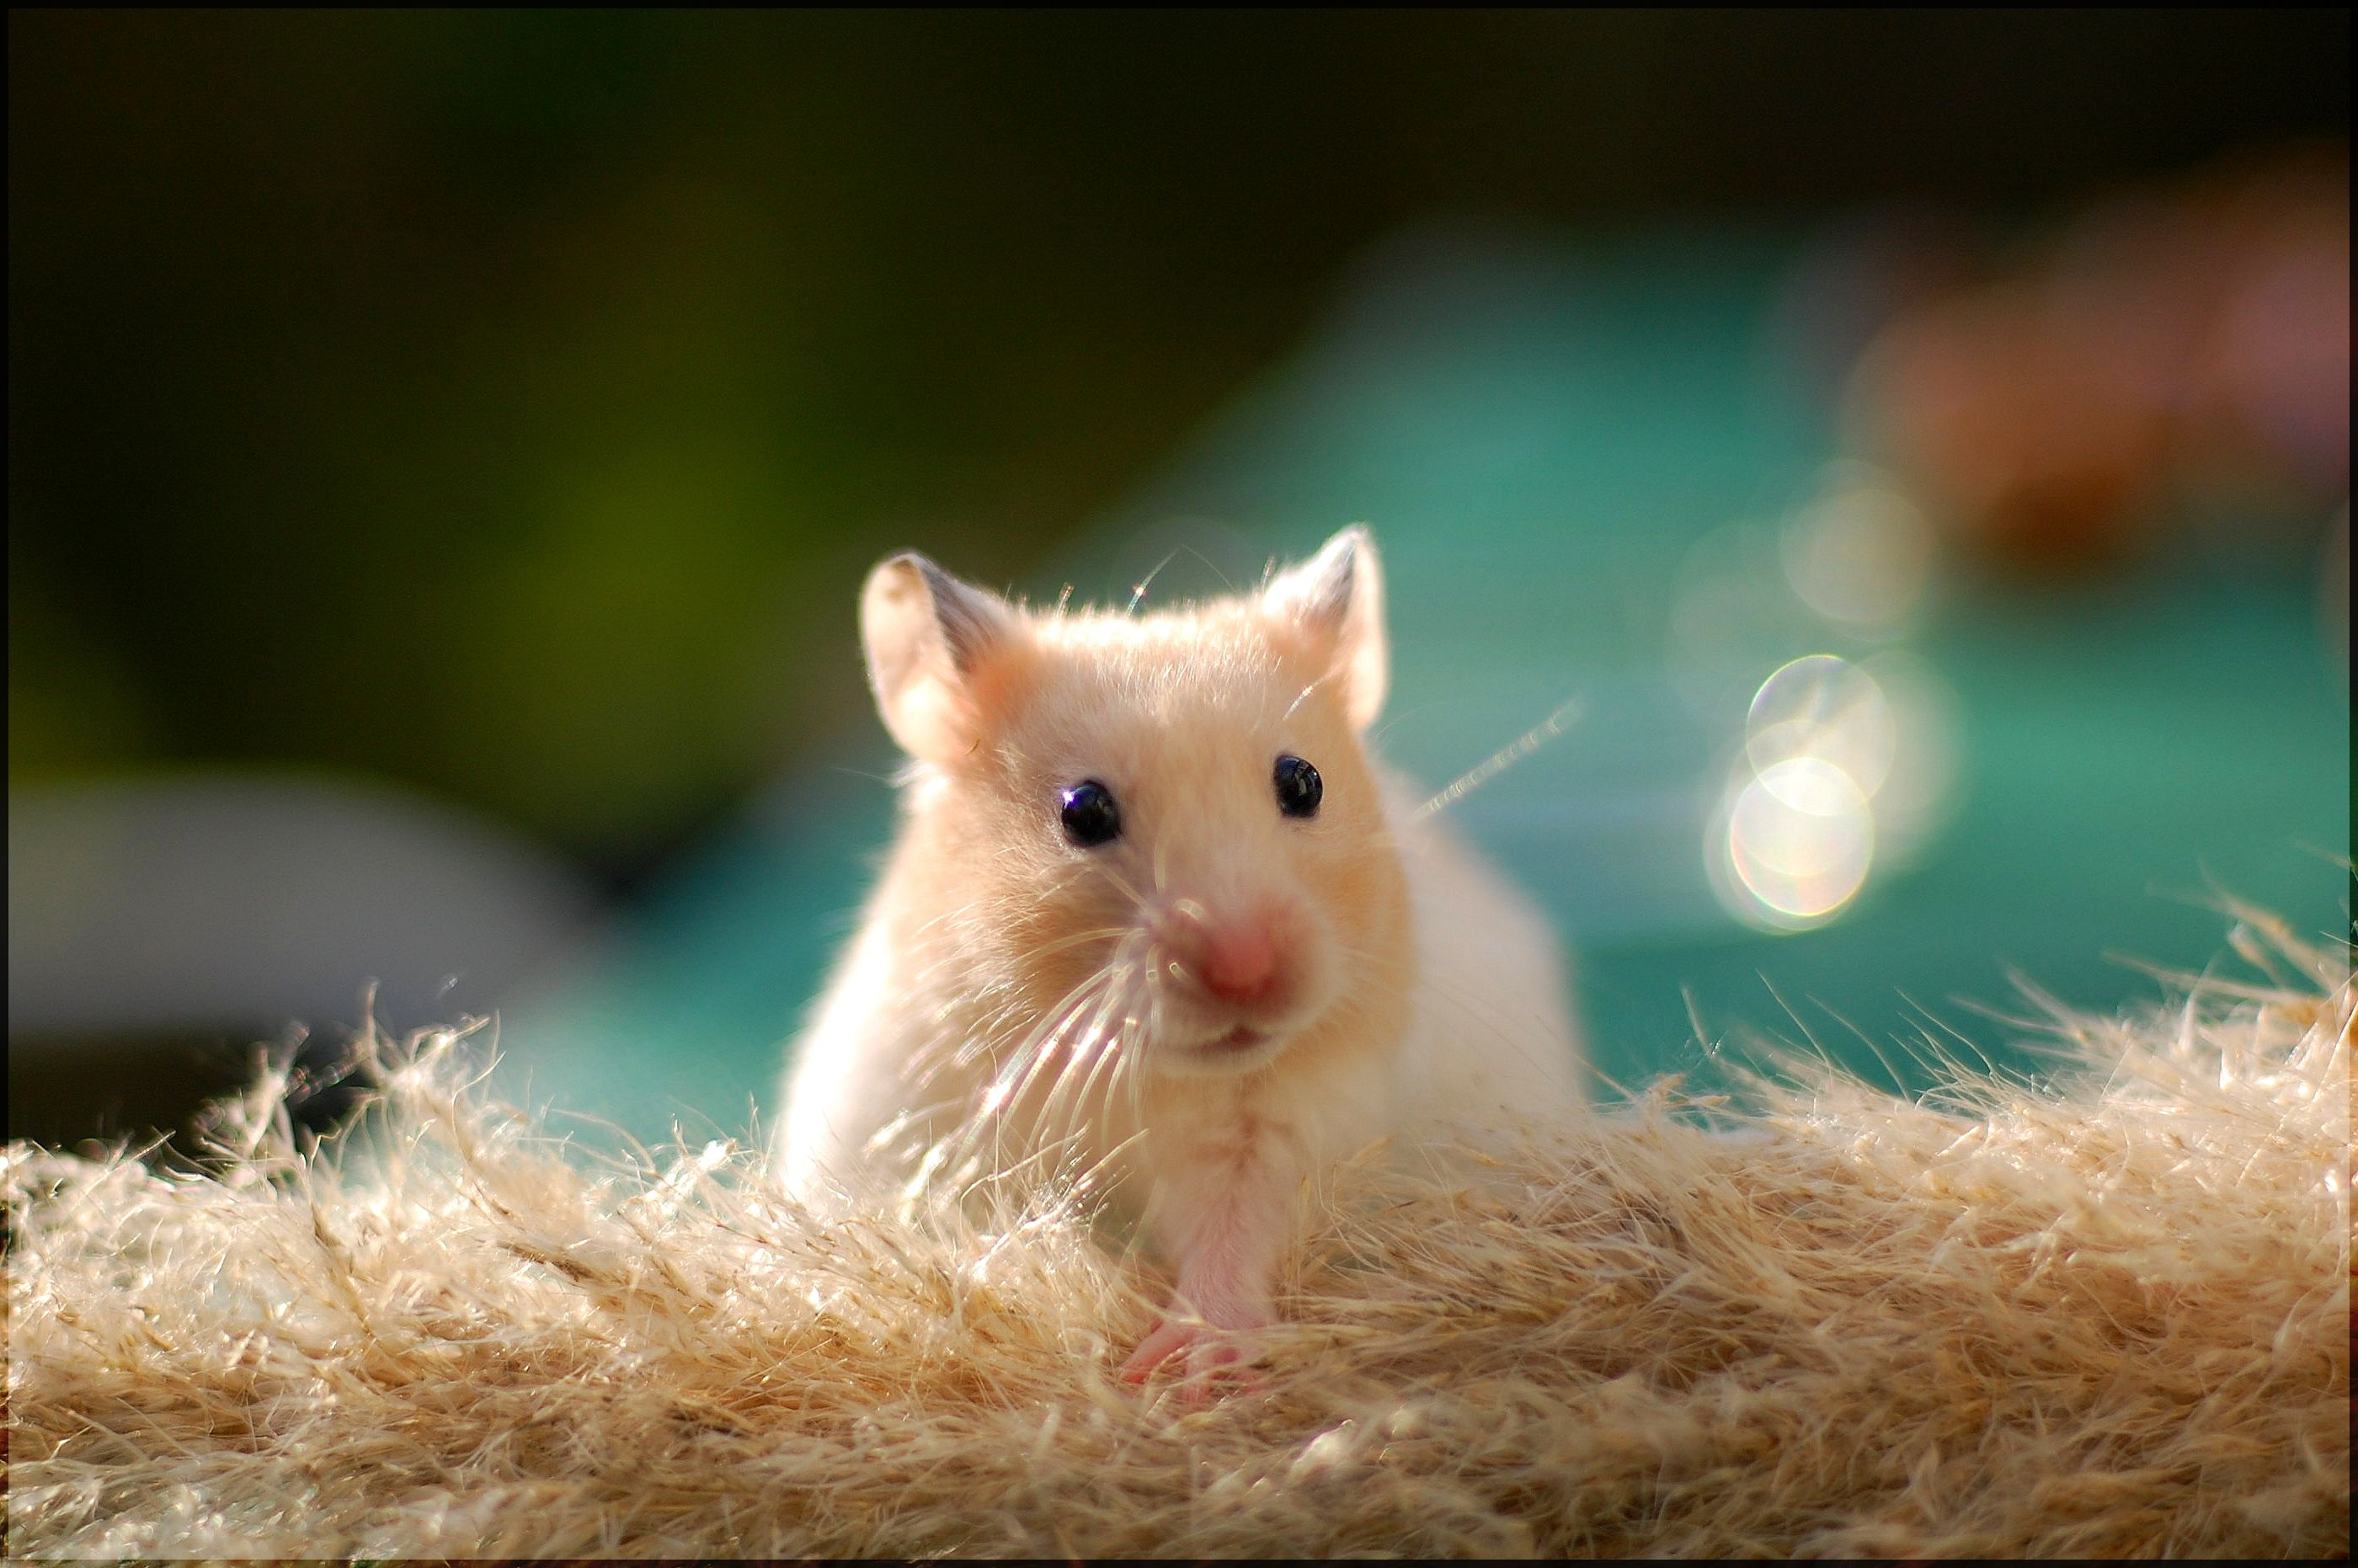 Hamster Take A Quick Break Visit Our Website For More Information And Pictres Hamster Wallpaper Hamsters As Pets Cute Hamsters